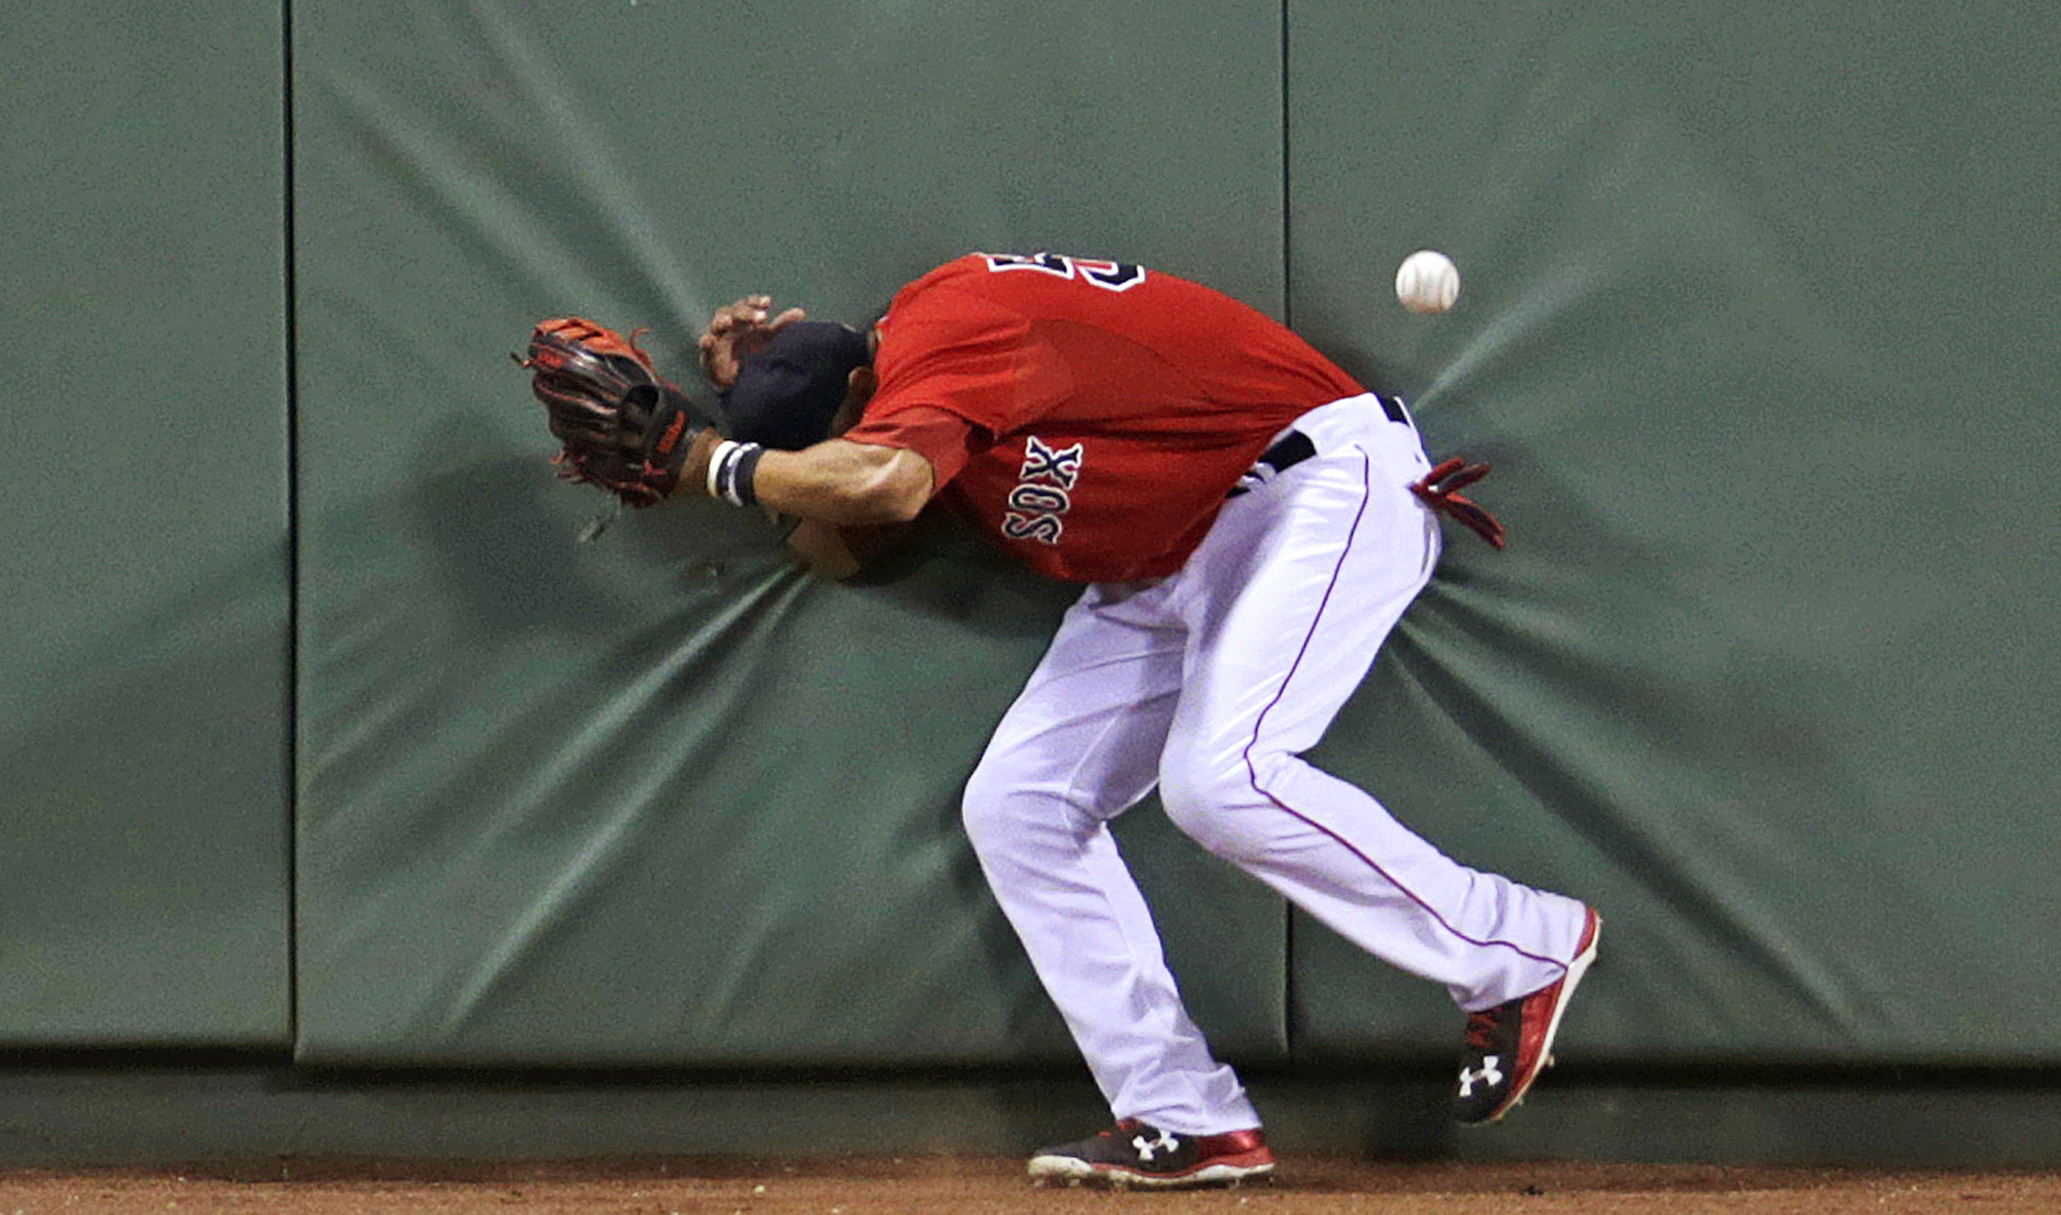 Boston Red Sox center fielder Mookie Betts hits the wall after losing track of the ball on a triple by Detroit Tigers' Ian Kinsler during the eighth inning of a baseball game at Fenway Park in Boston, Friday, July 24, 2015. (AP Photo/Charles Krupa)